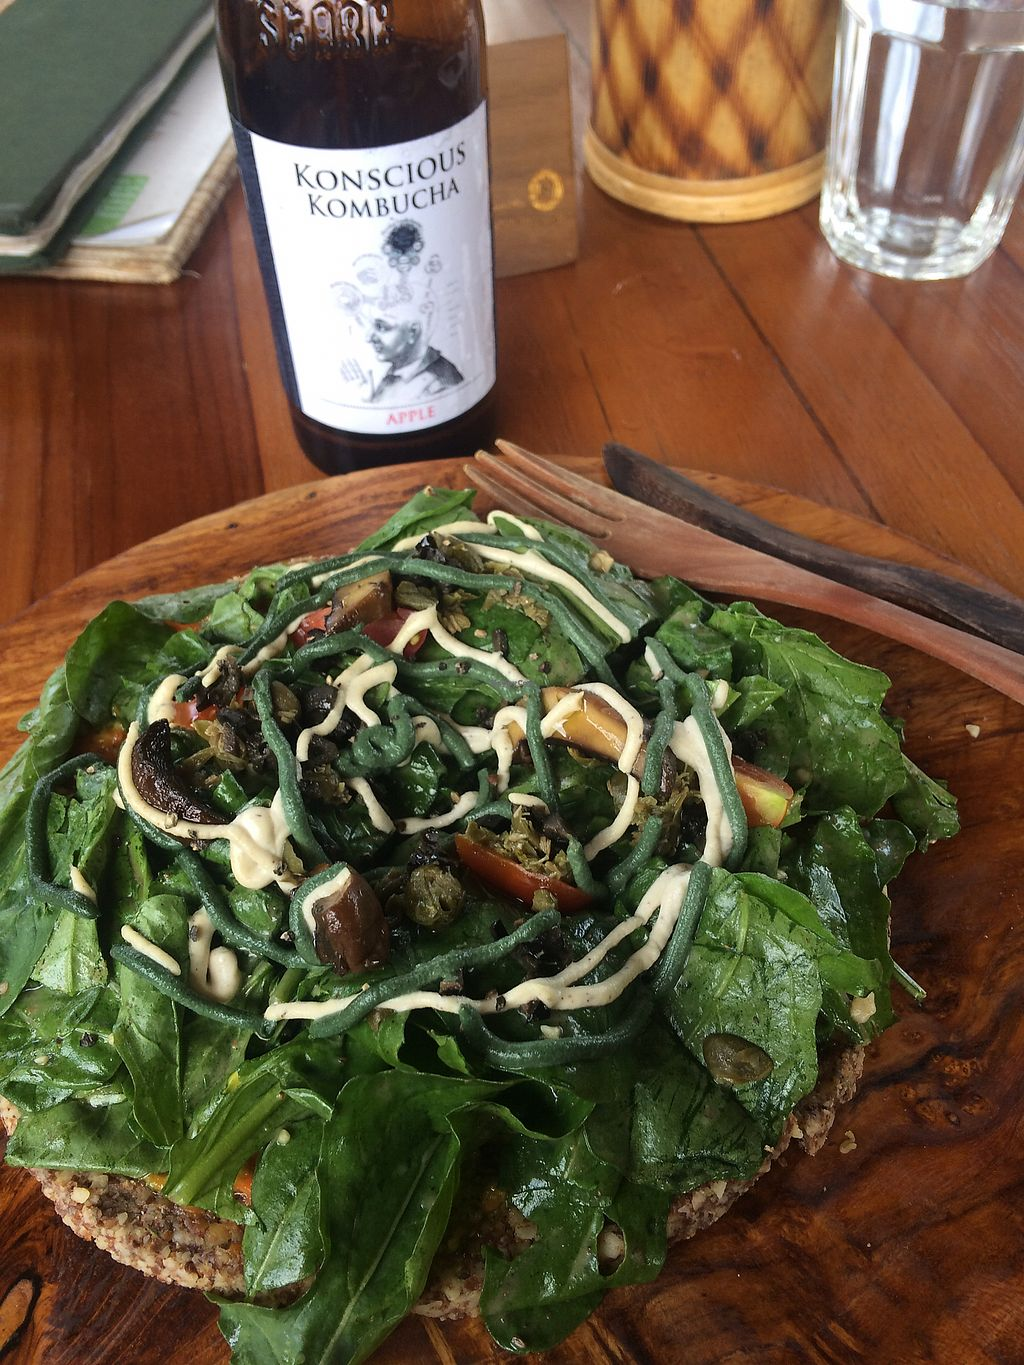 """Photo of The Seeds of Life  by <a href=""""/members/profile/analusilveira"""">analusilveira</a> <br/>Vegan pizza and kombucha <br/> October 6, 2017  - <a href='/contact/abuse/image/47407/312187'>Report</a>"""